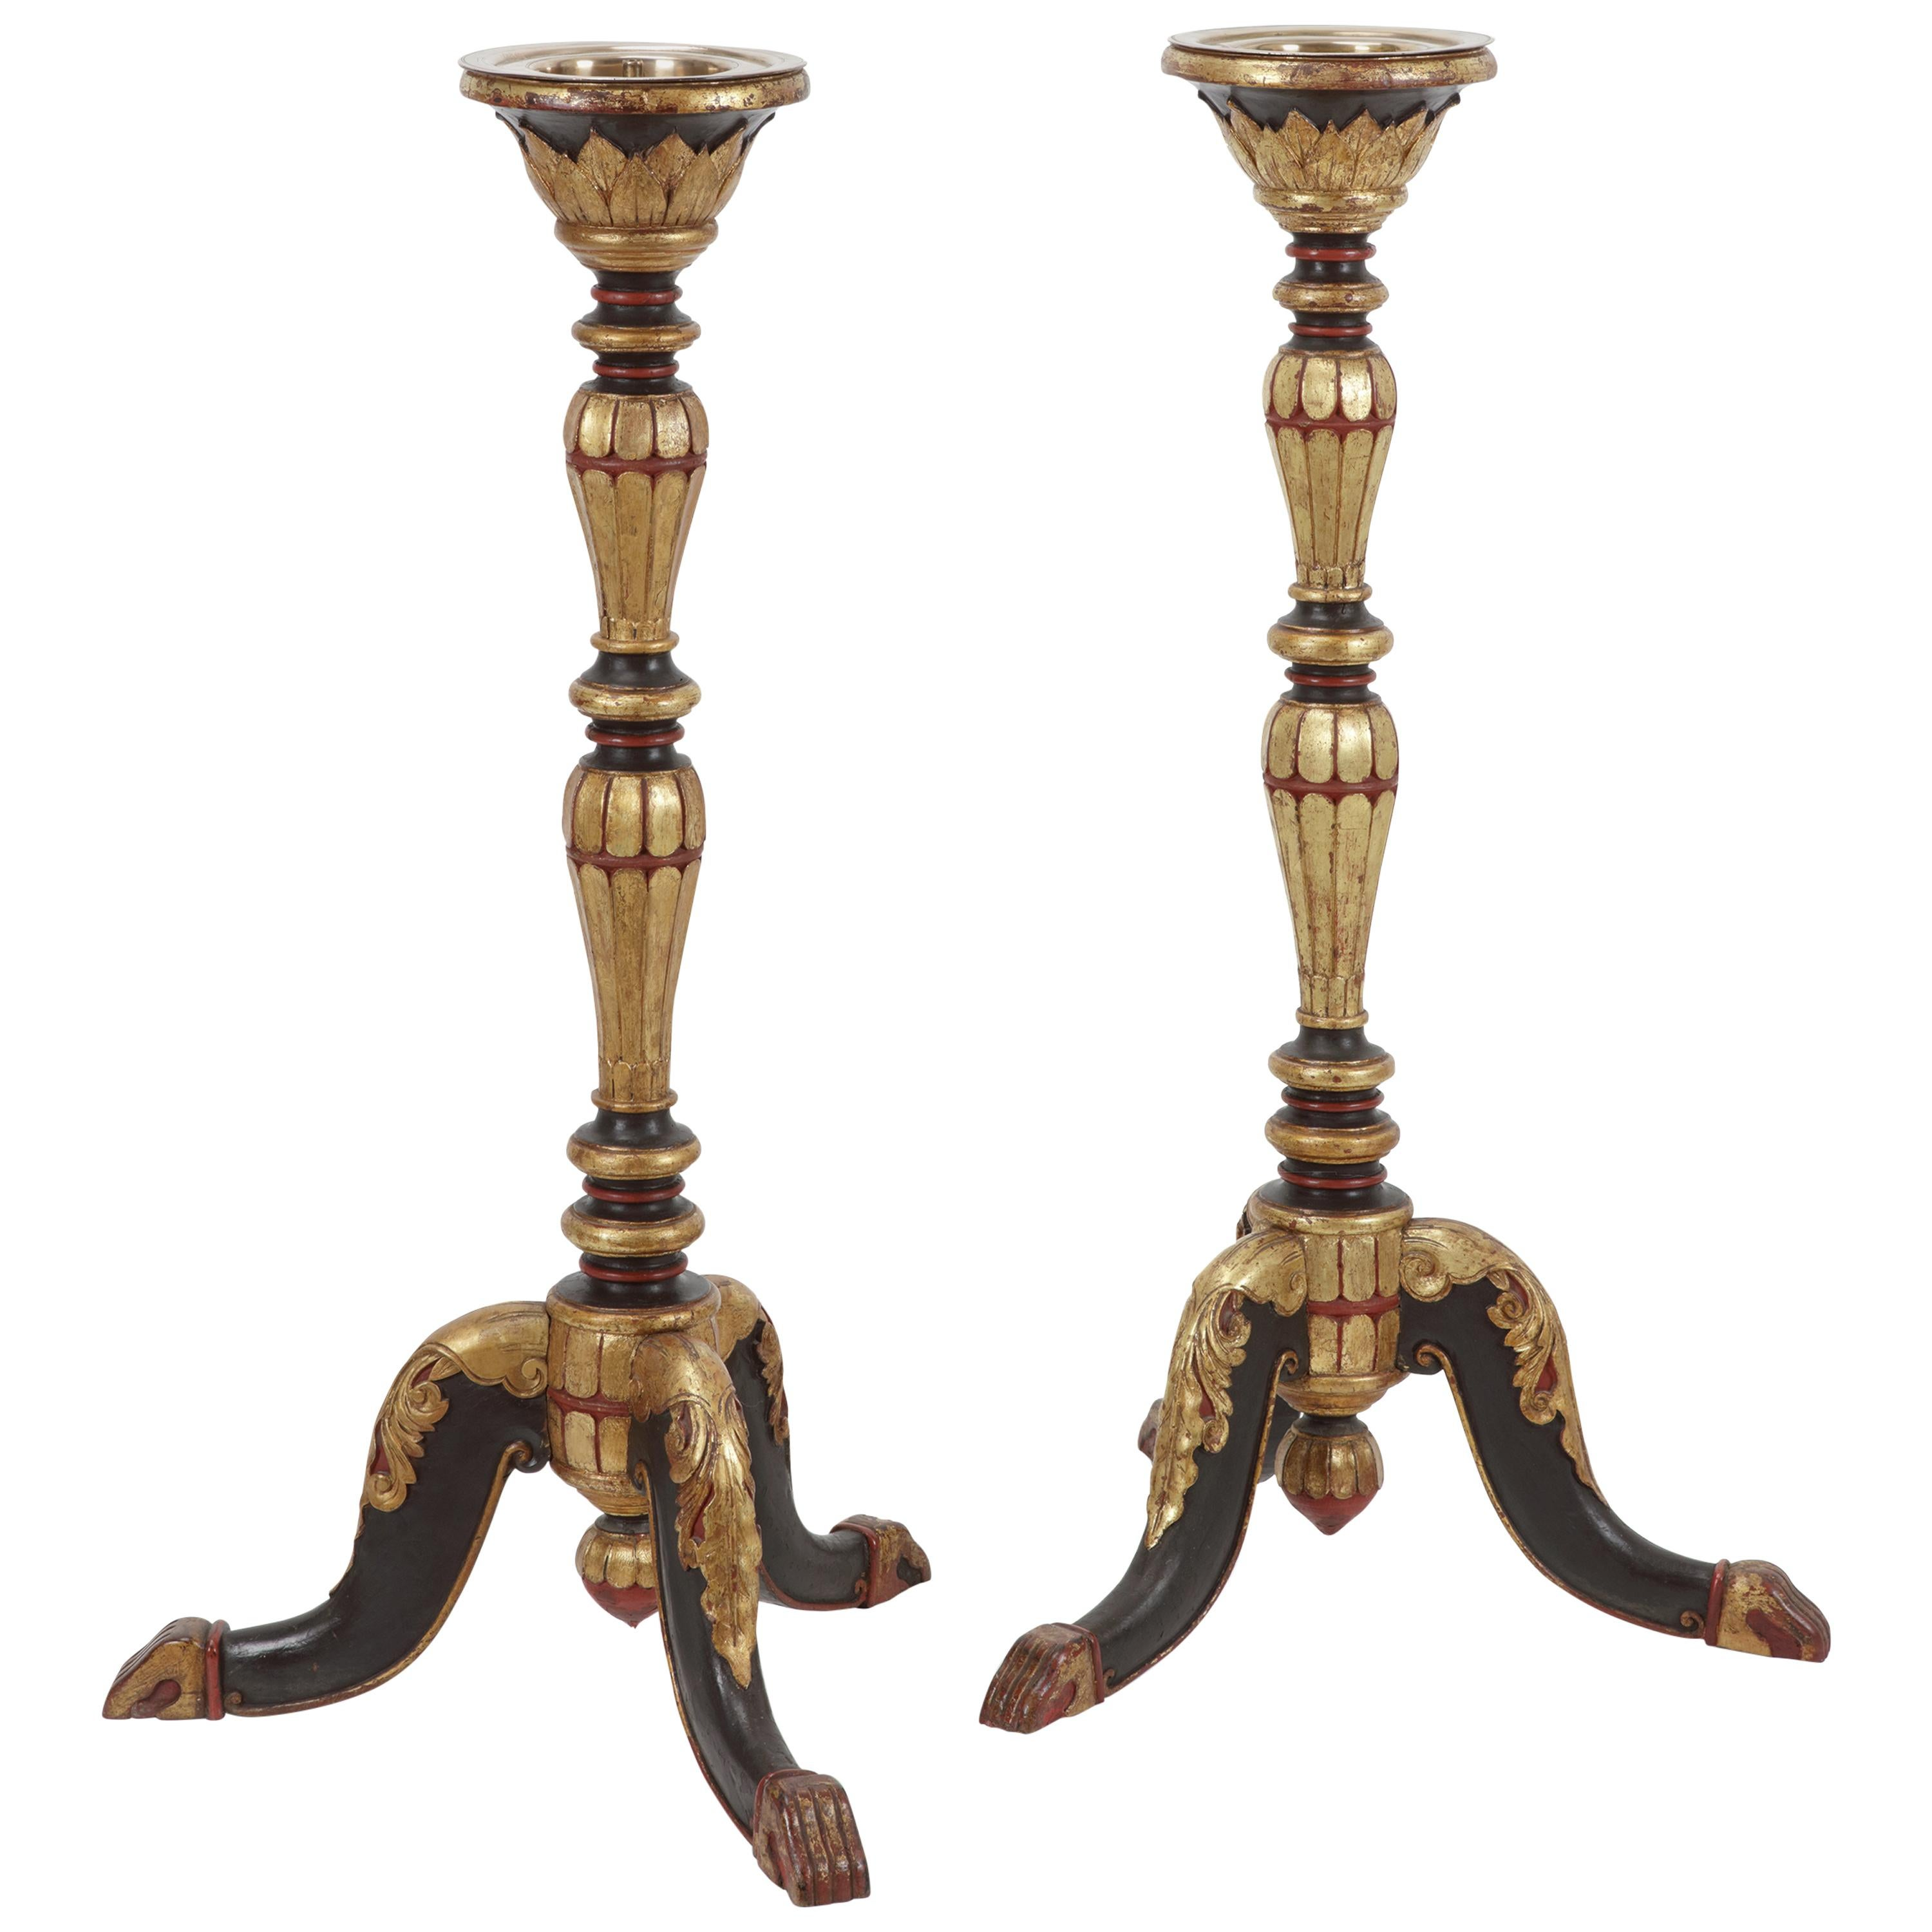 Dutch Colonial Candle Holders